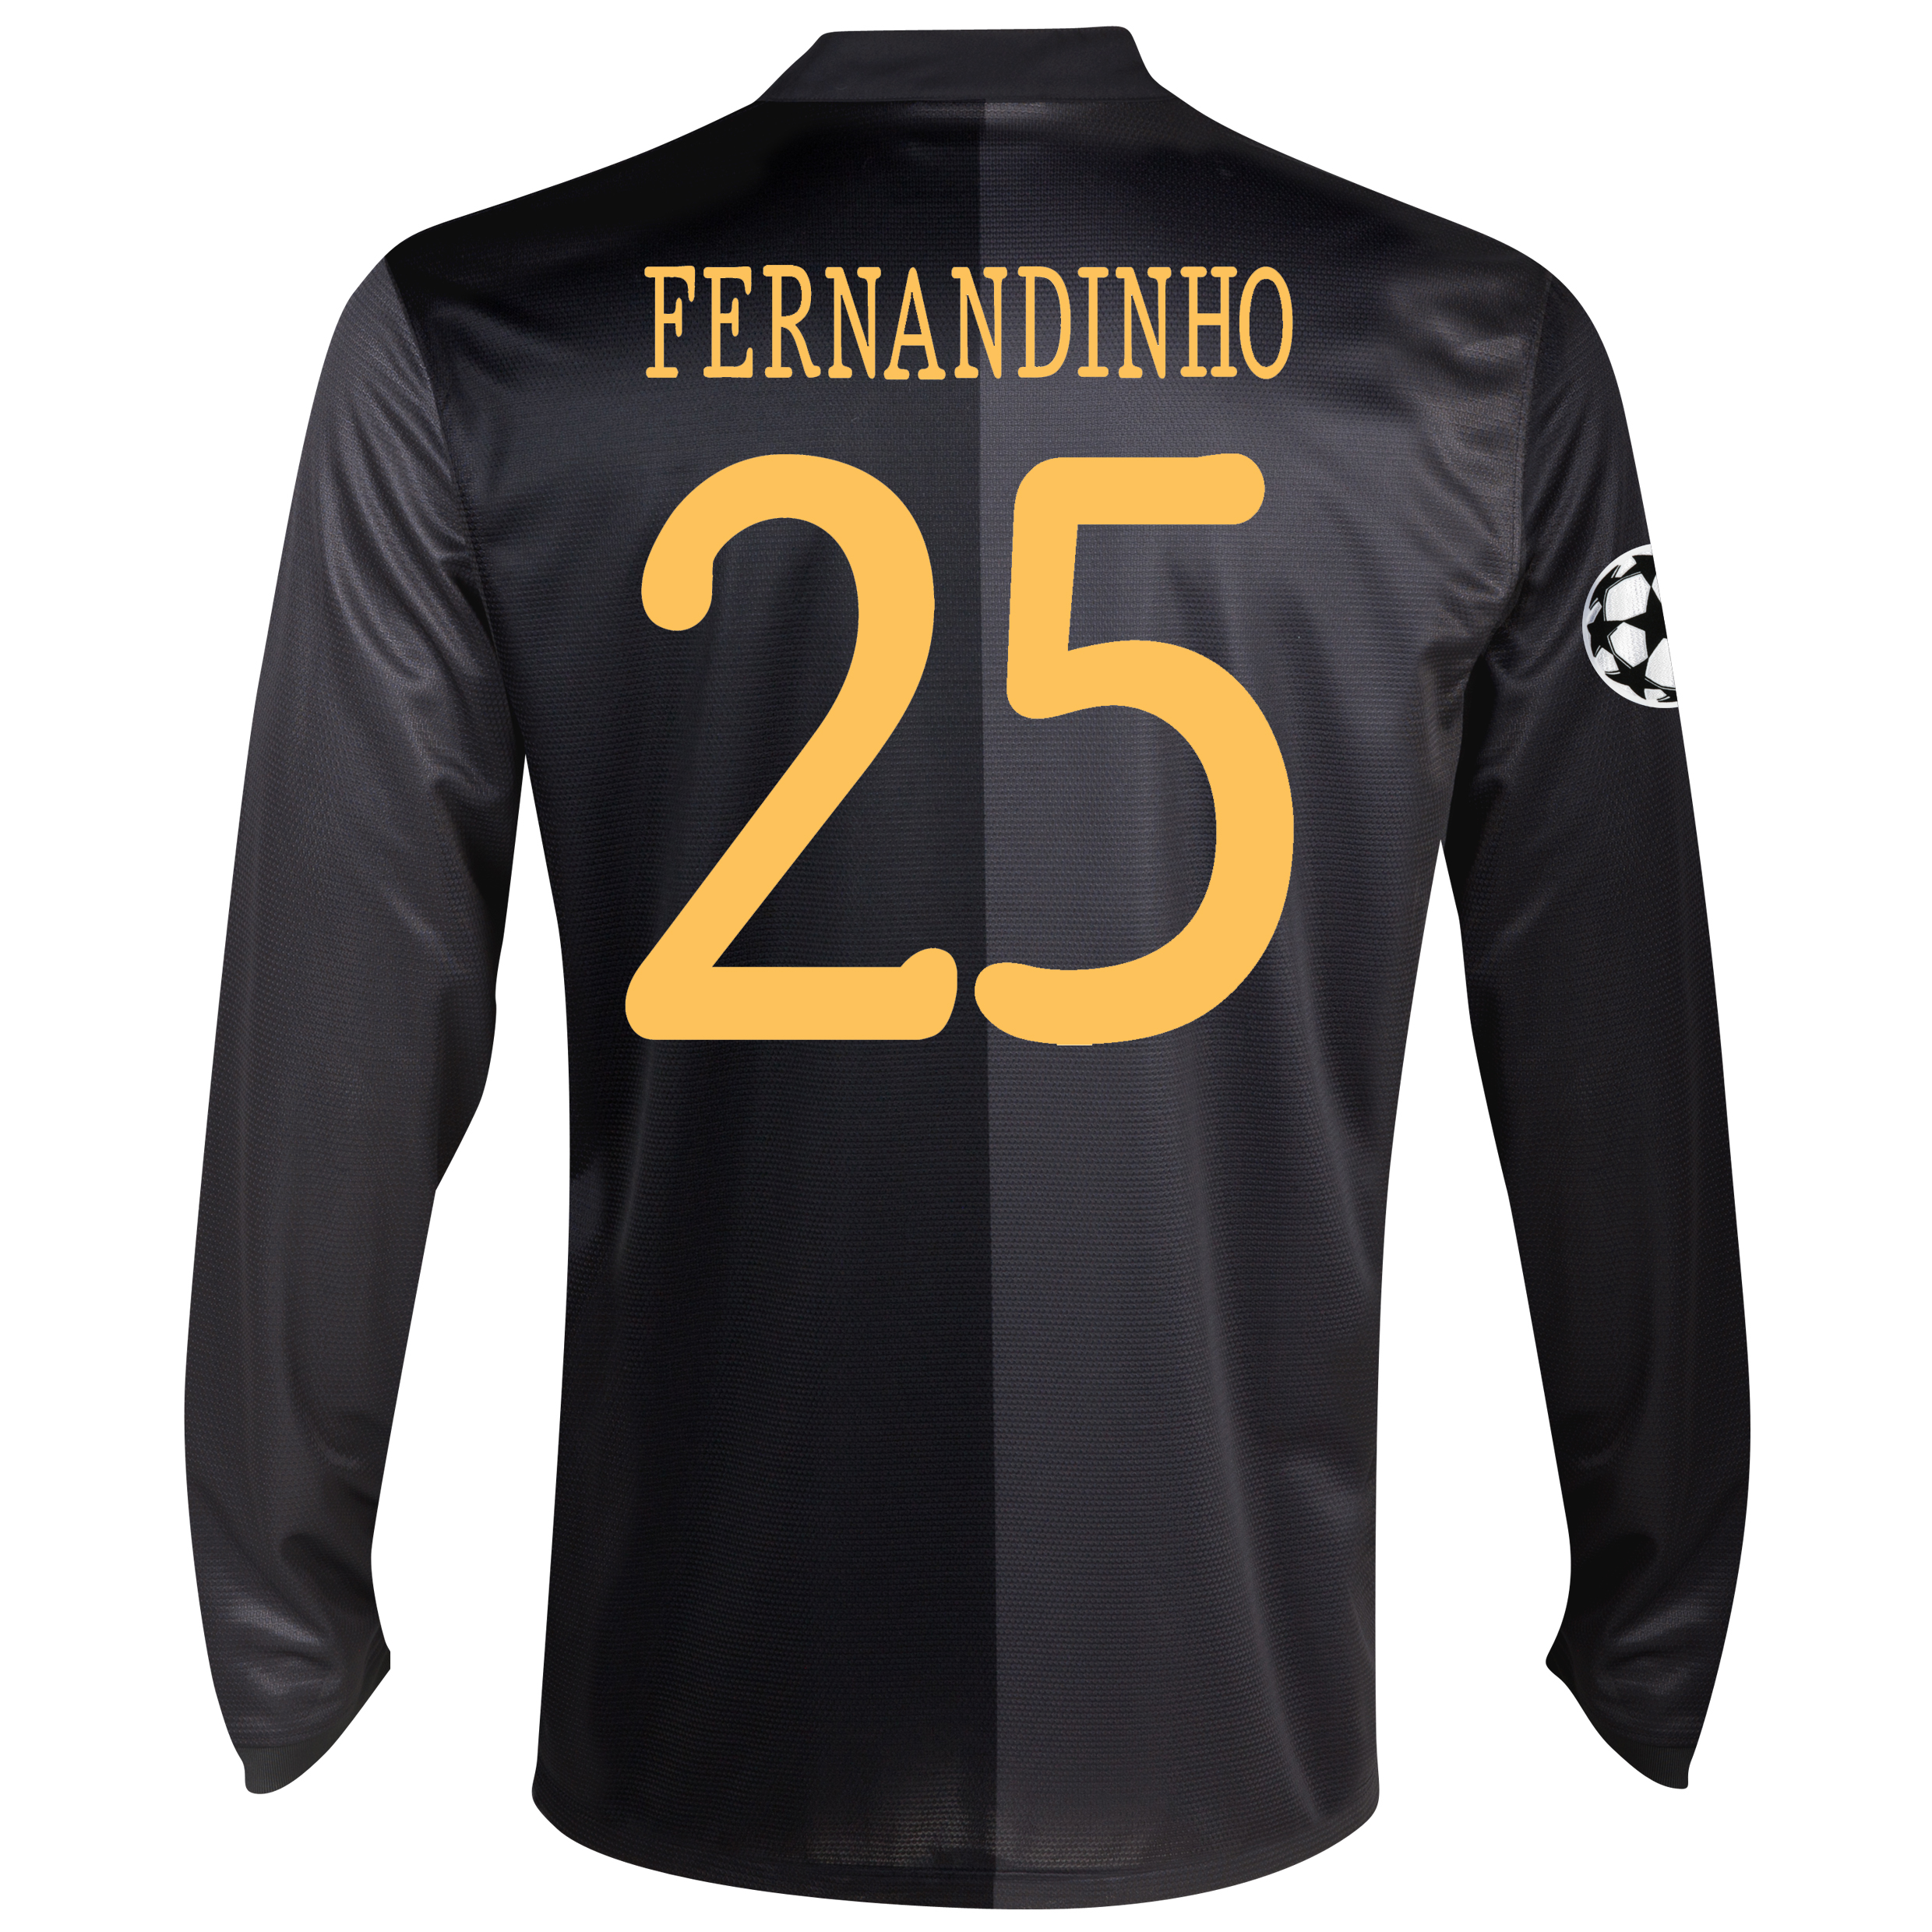 Manchester City UEFA Champions League Away Shirt 2013/14 - Long Sleeved with Fernandinho 25 printing